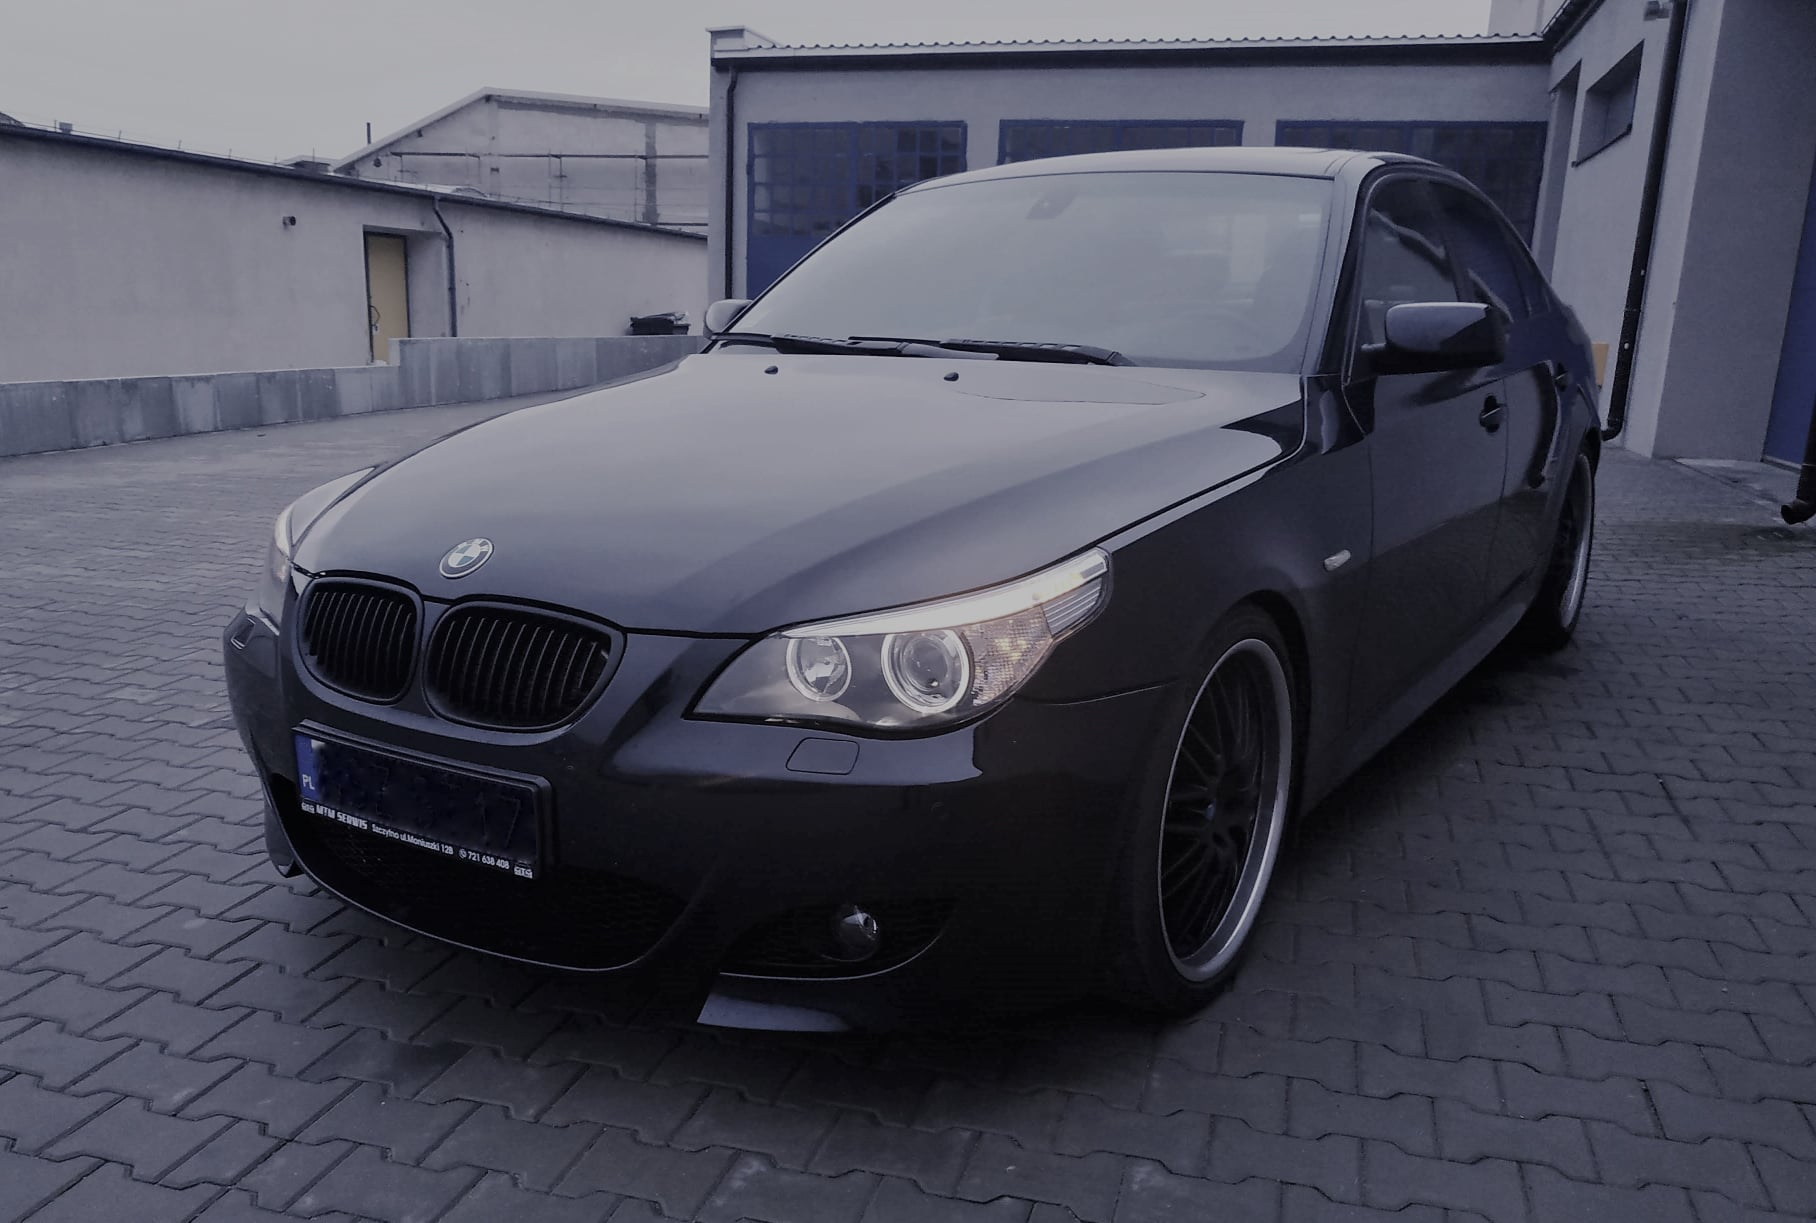 BMW E60 535D 272KM >> 372KM 720Nm